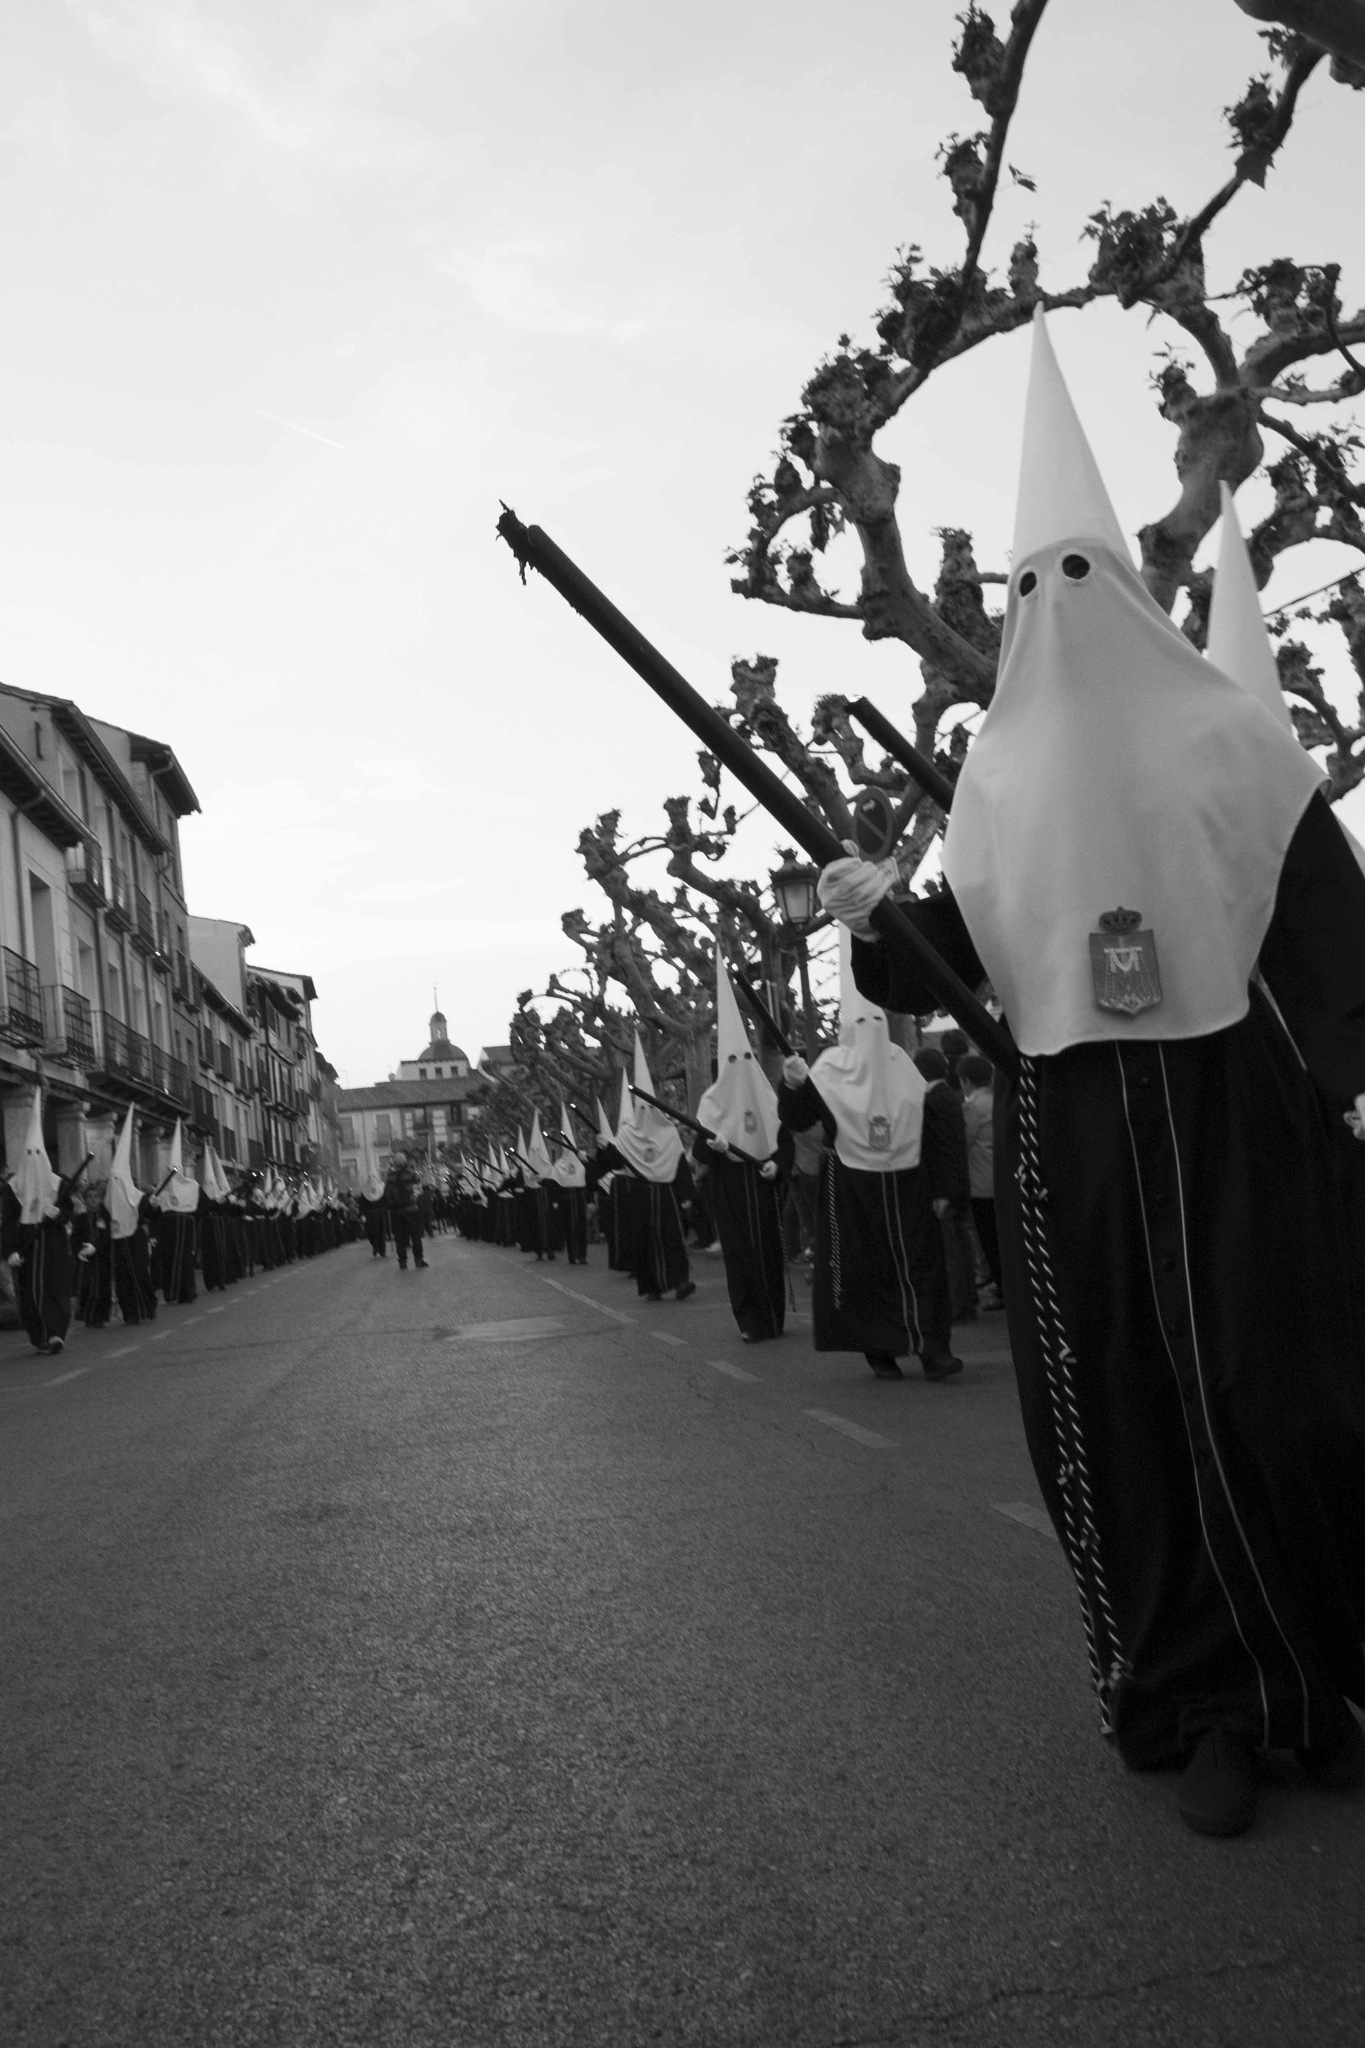 Easter scenes (processions) by juliandelnogal